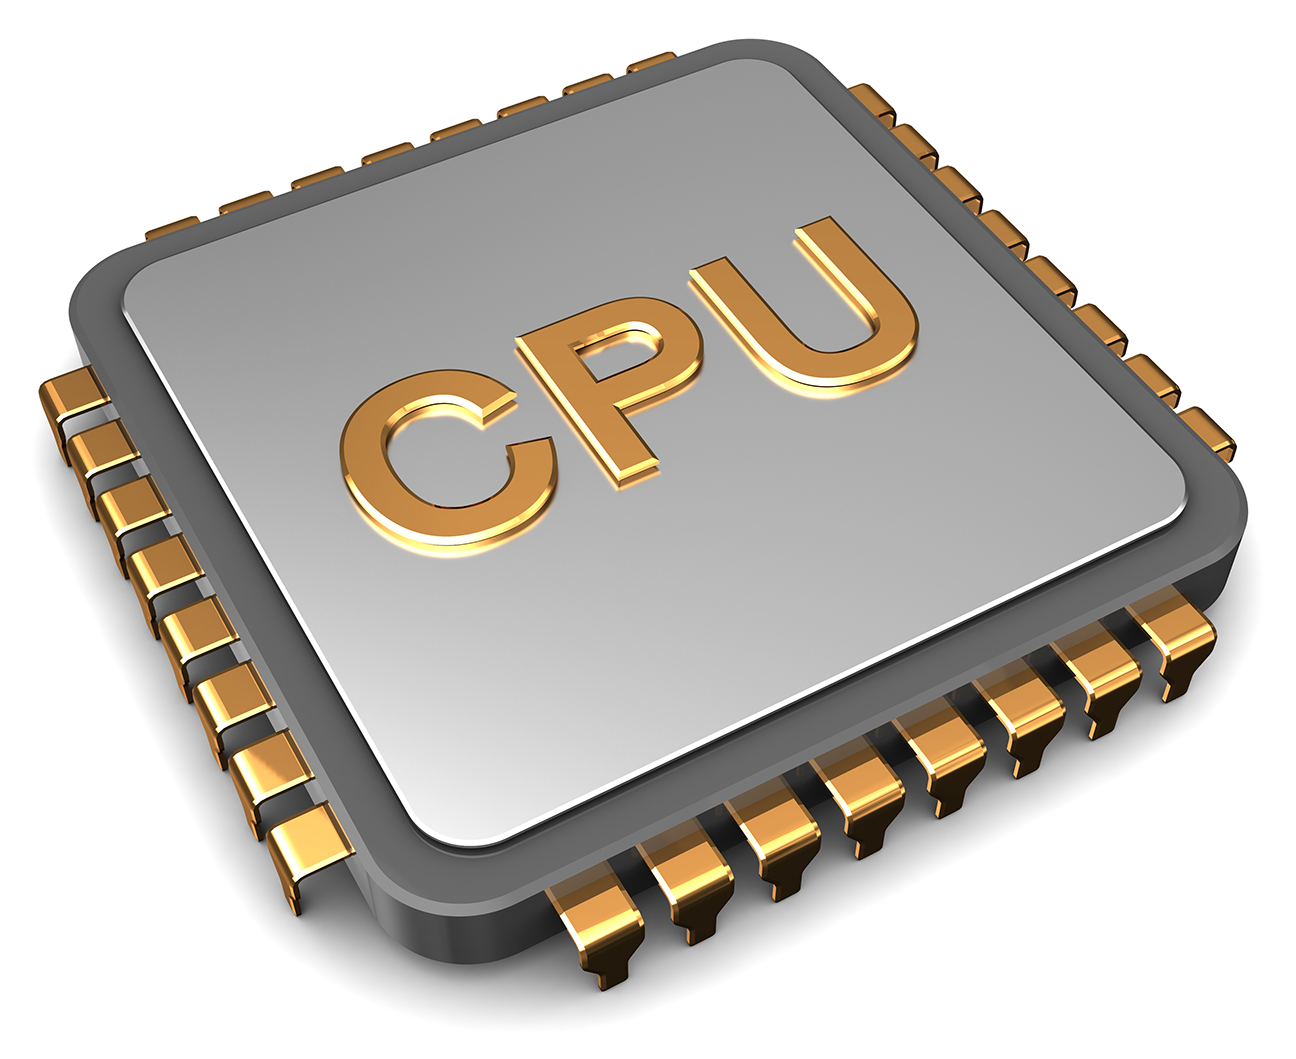 1296x1059 > CPU Wallpapers